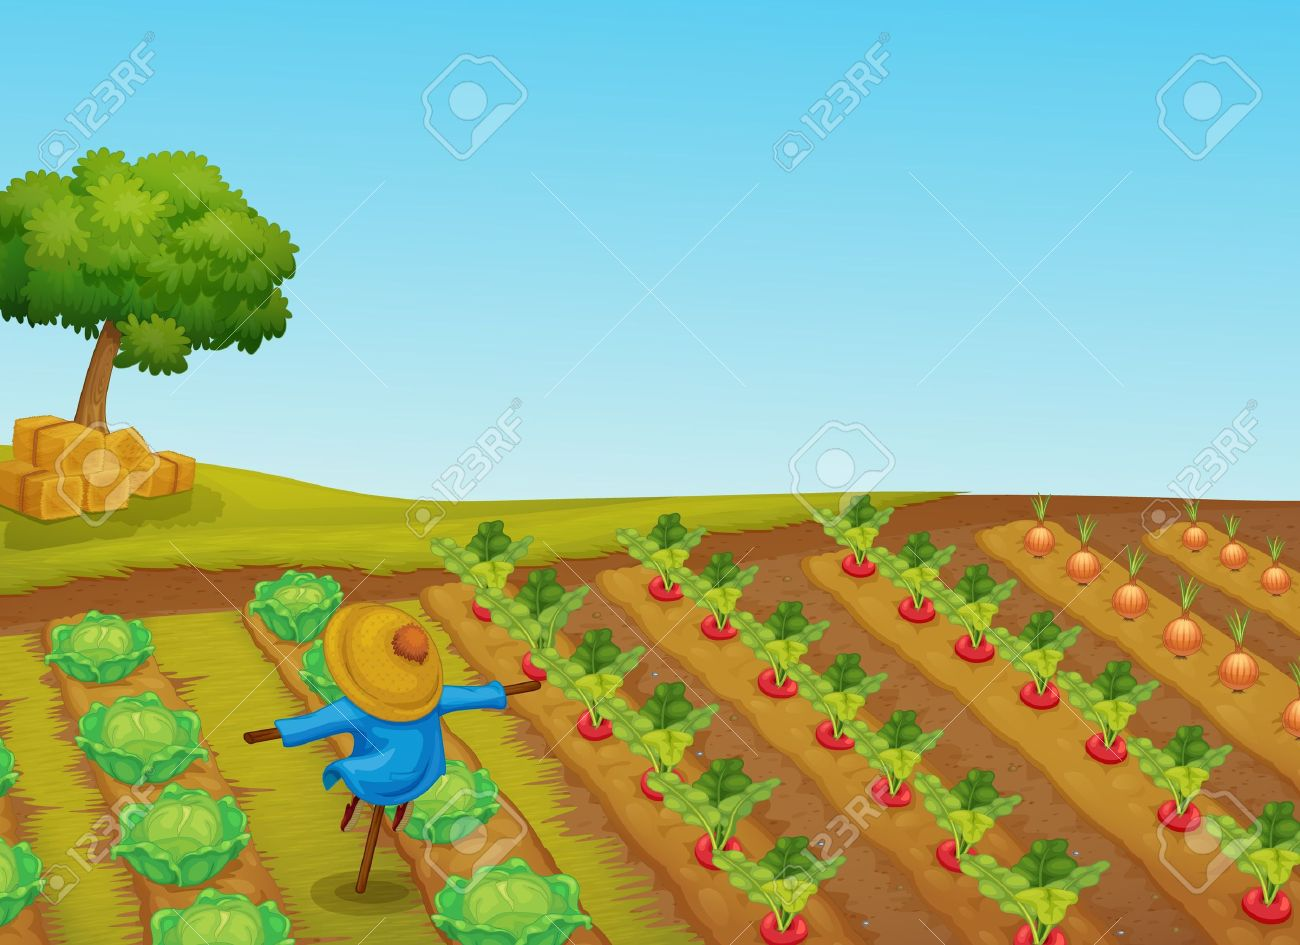 Illustration of a scarecrow in a vegetable patch - 13541934